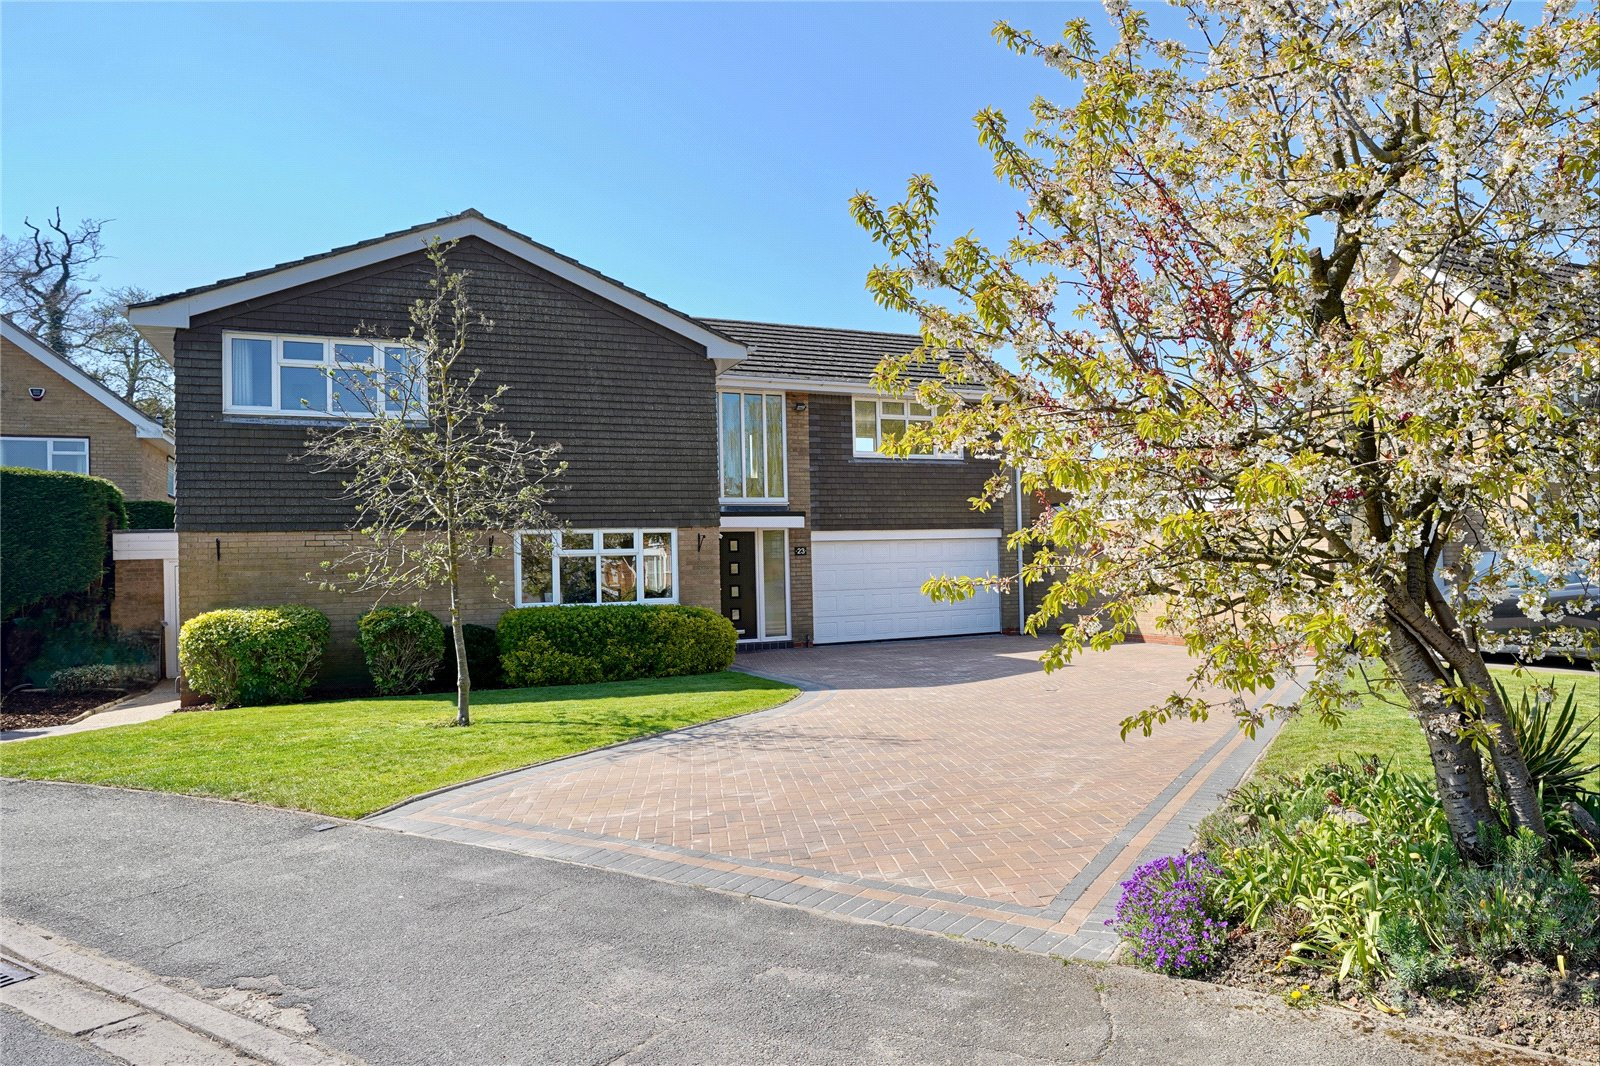 5 bed house for sale in Rowley Road, St. Neots  - Property Image 1